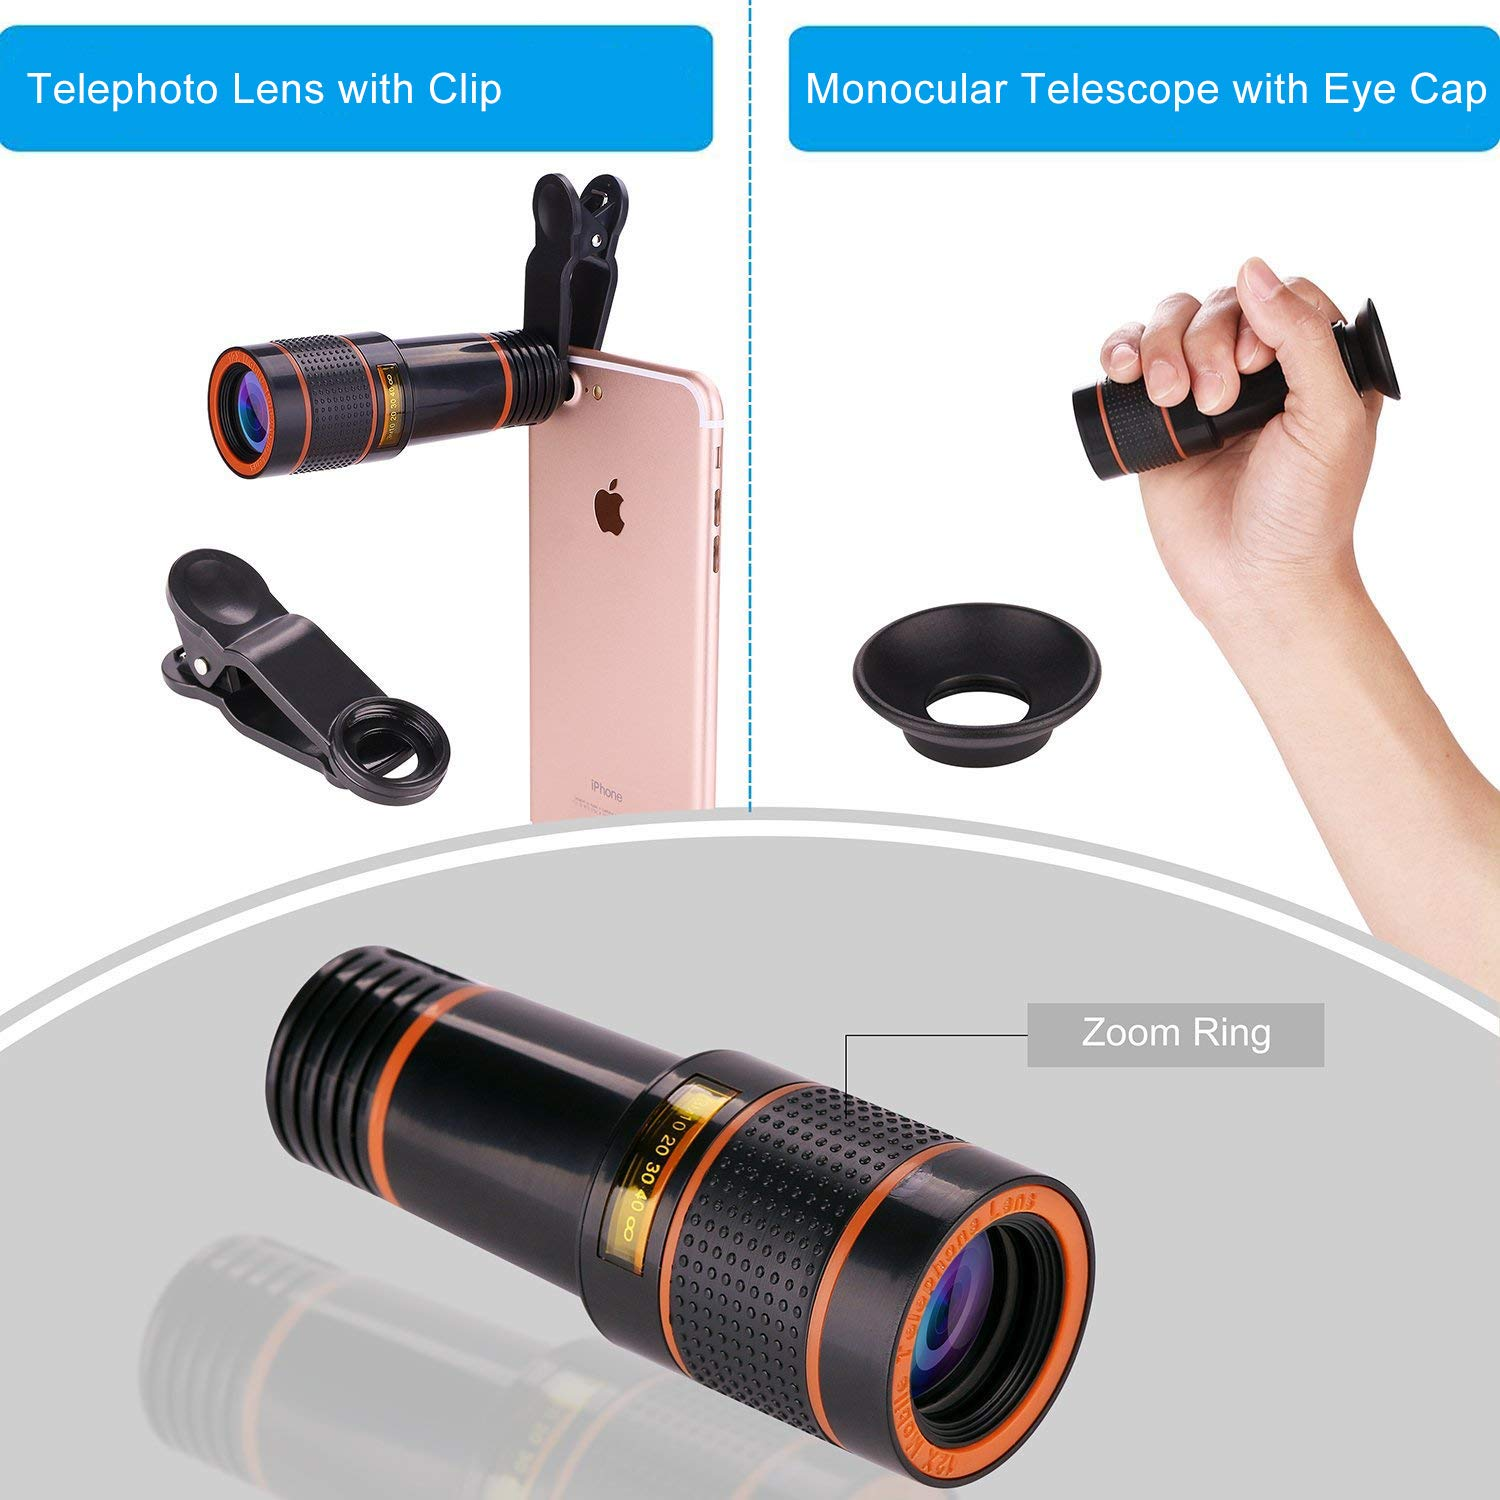 22b2be3482e5ef Macro and Wide Angle Lens for iPhone X 8 7 6 Plus Samsung Android Smartphone  GD-GC-6 Tripod Fisheye Cell Phone Camera Lens Kit SEVENKA 18X Zoom ...